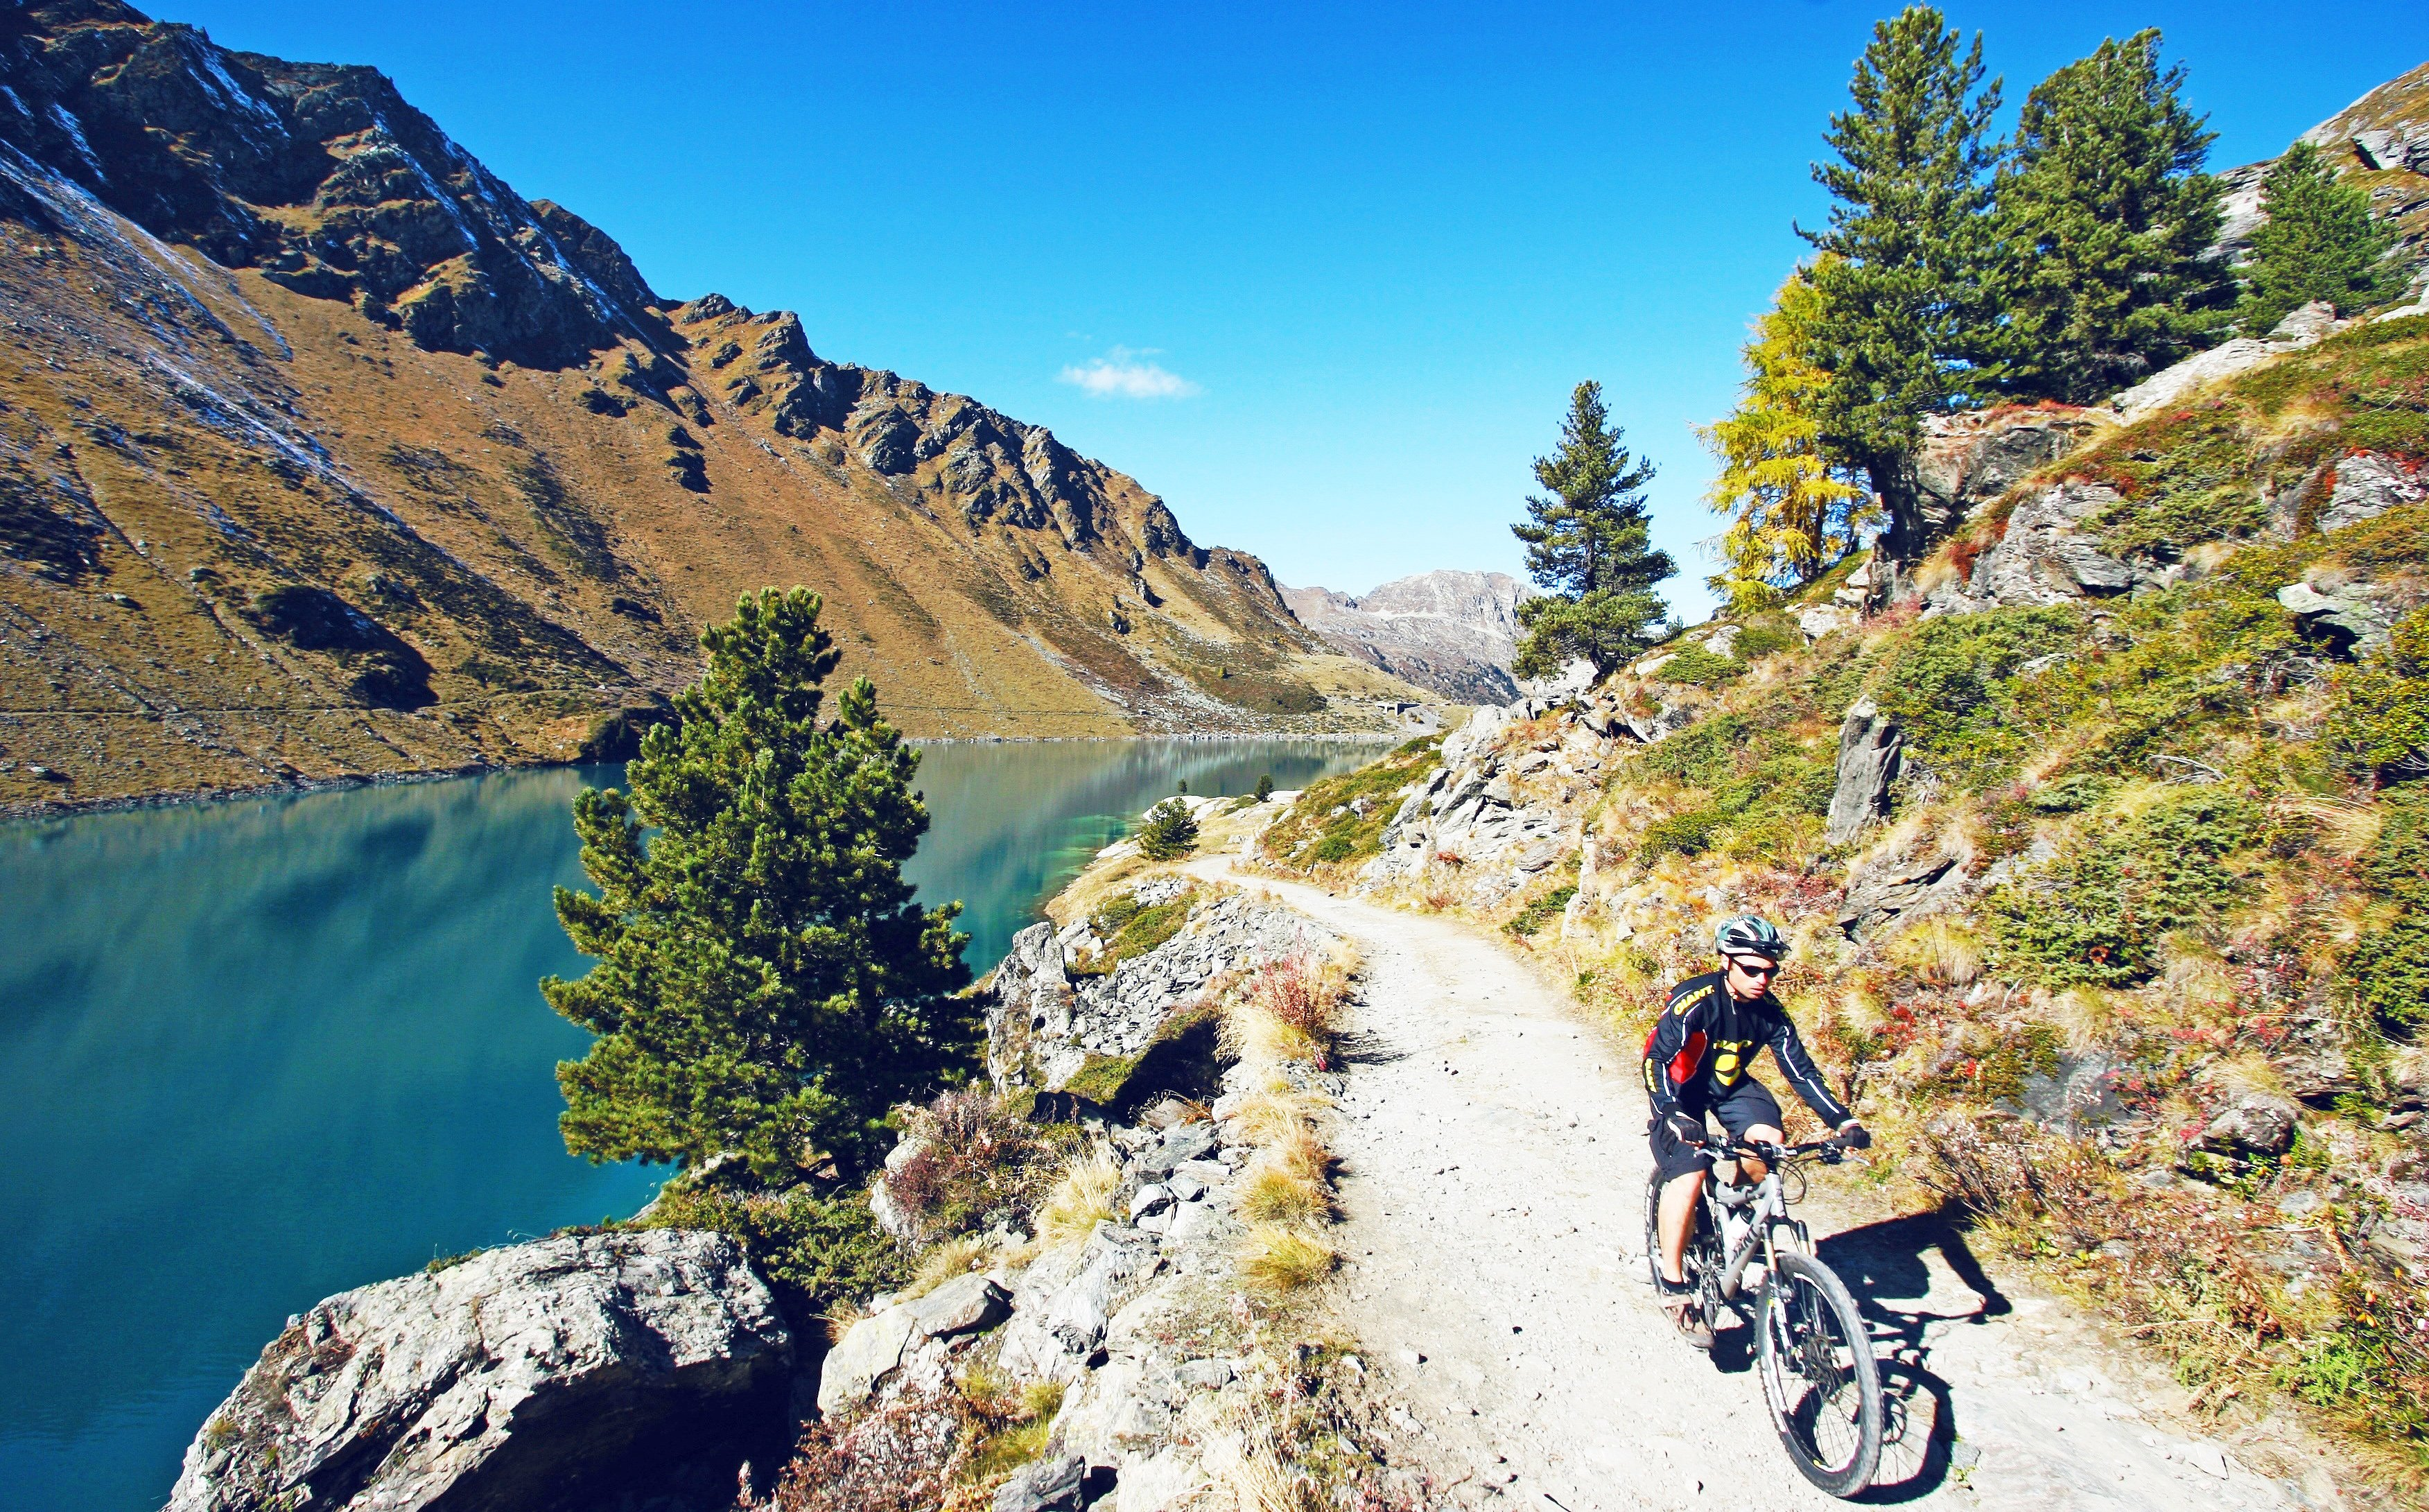 Pedal to the turquoise waters of Cleuson while discovering stunning panoramas.